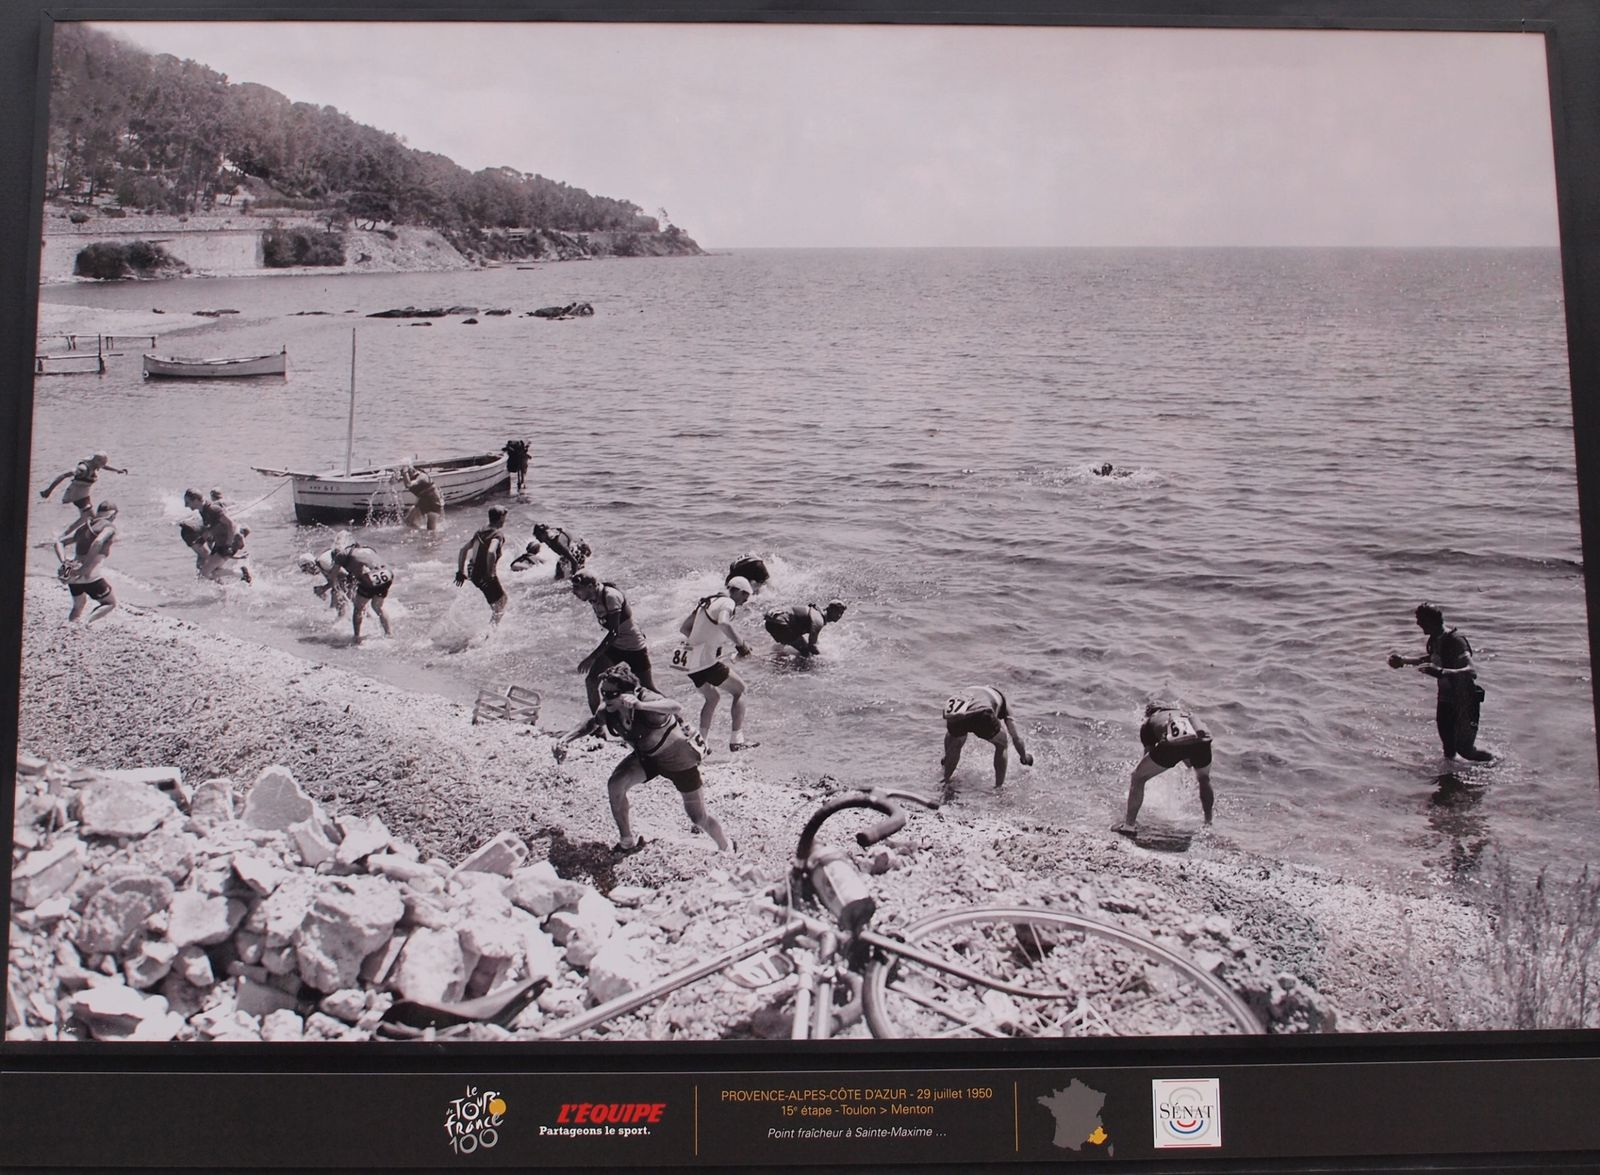 Tour-de-France-1950-Sainte-Maxime-PACA.JPG